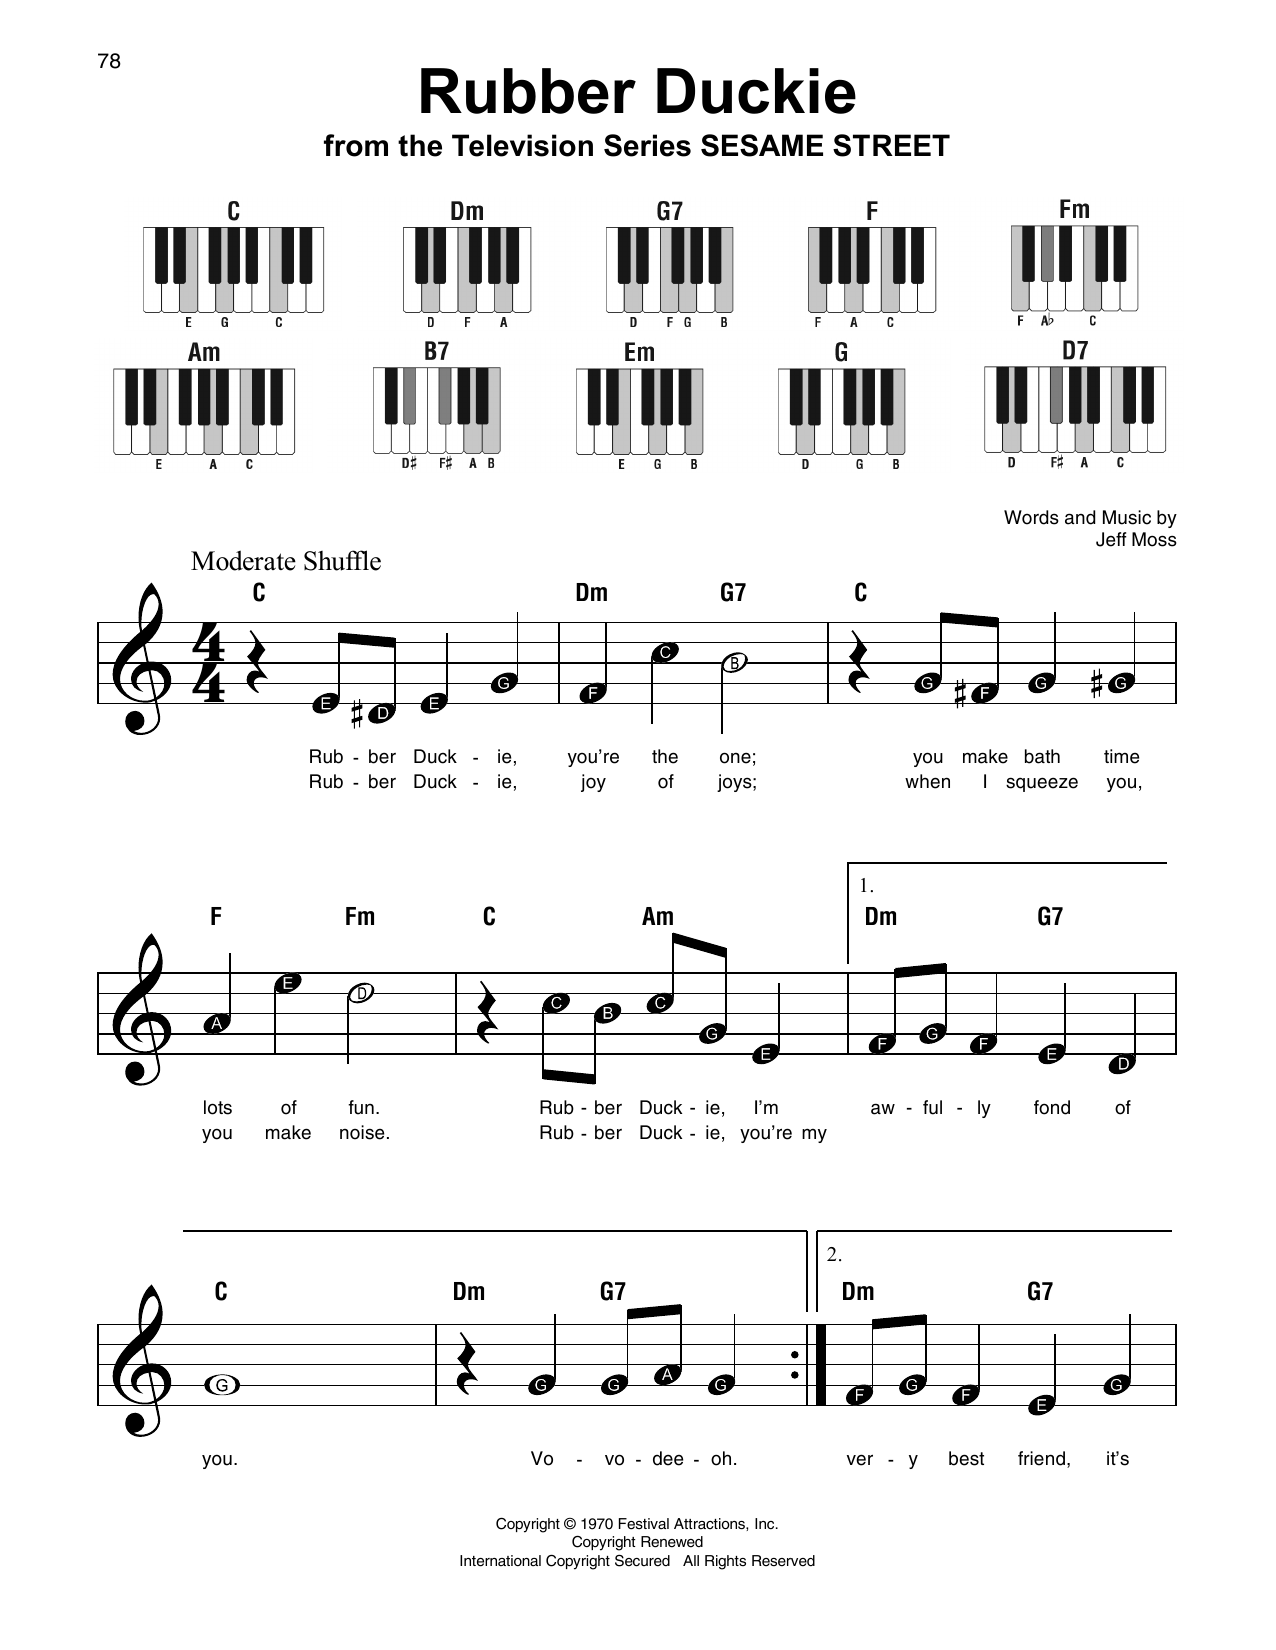 Rubber Duckie Sheet Music